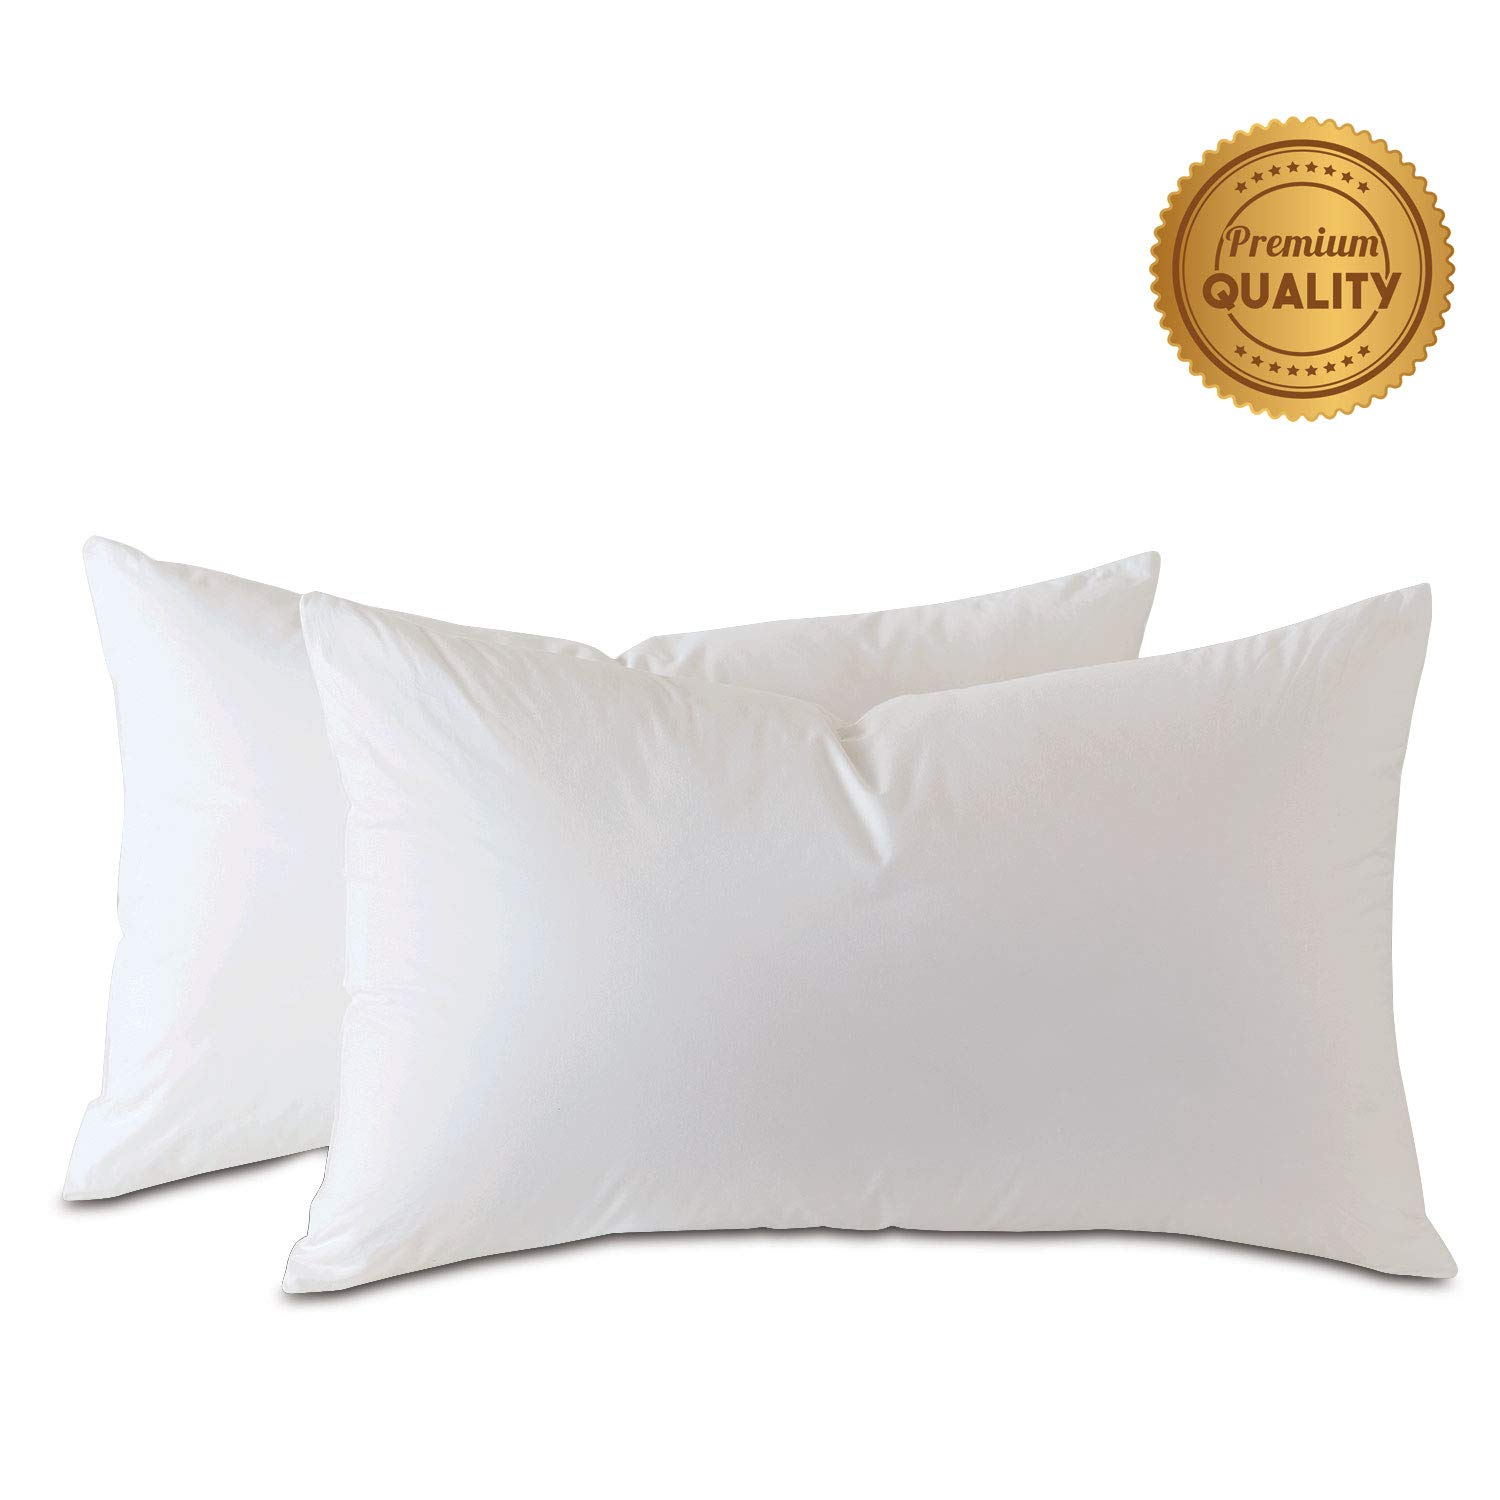 Plankroad Home Décor 13x22 Hypoallergenic Luxury 100% Small Feather Rectangular Pillow Insert, 100% Cambric Cotton Shell, Never Vacuum-Packed, Odorless, Made in USA, Set of 2